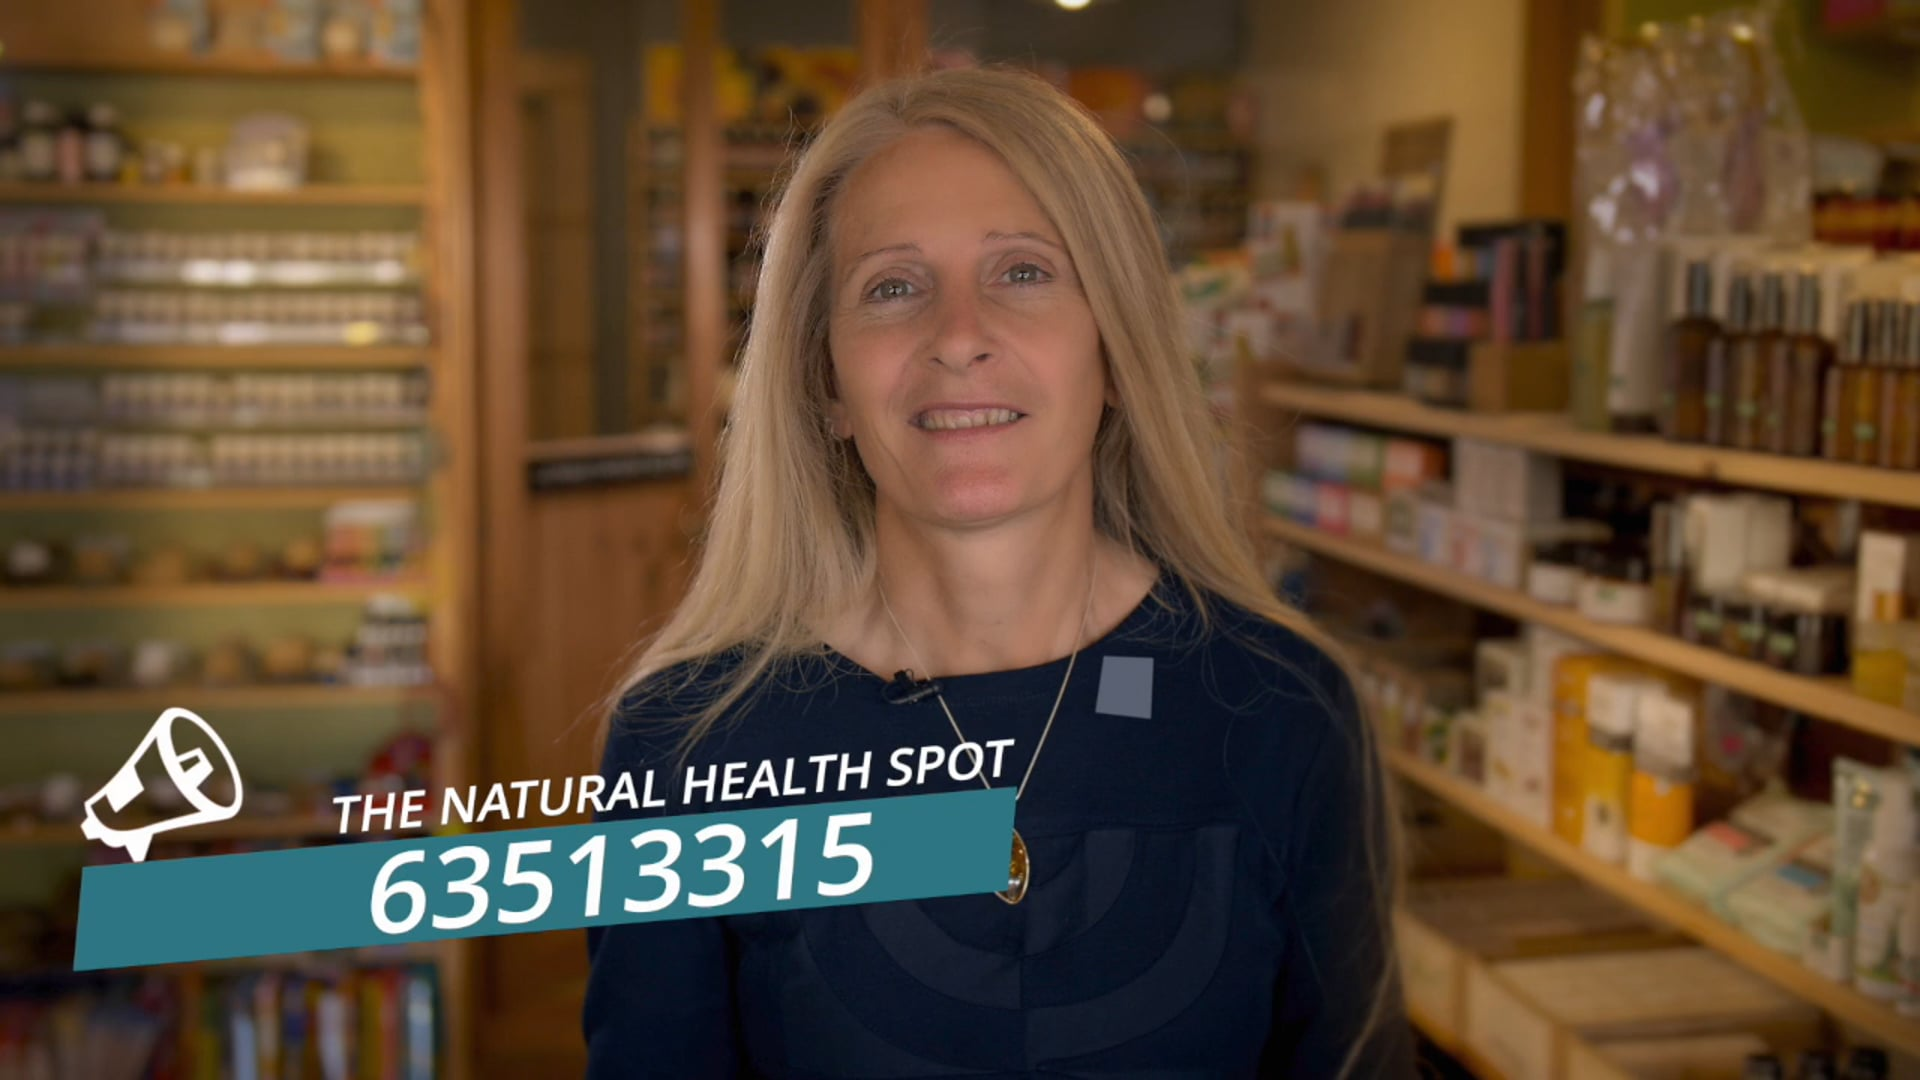 The Natural Health Spot - Lithgow